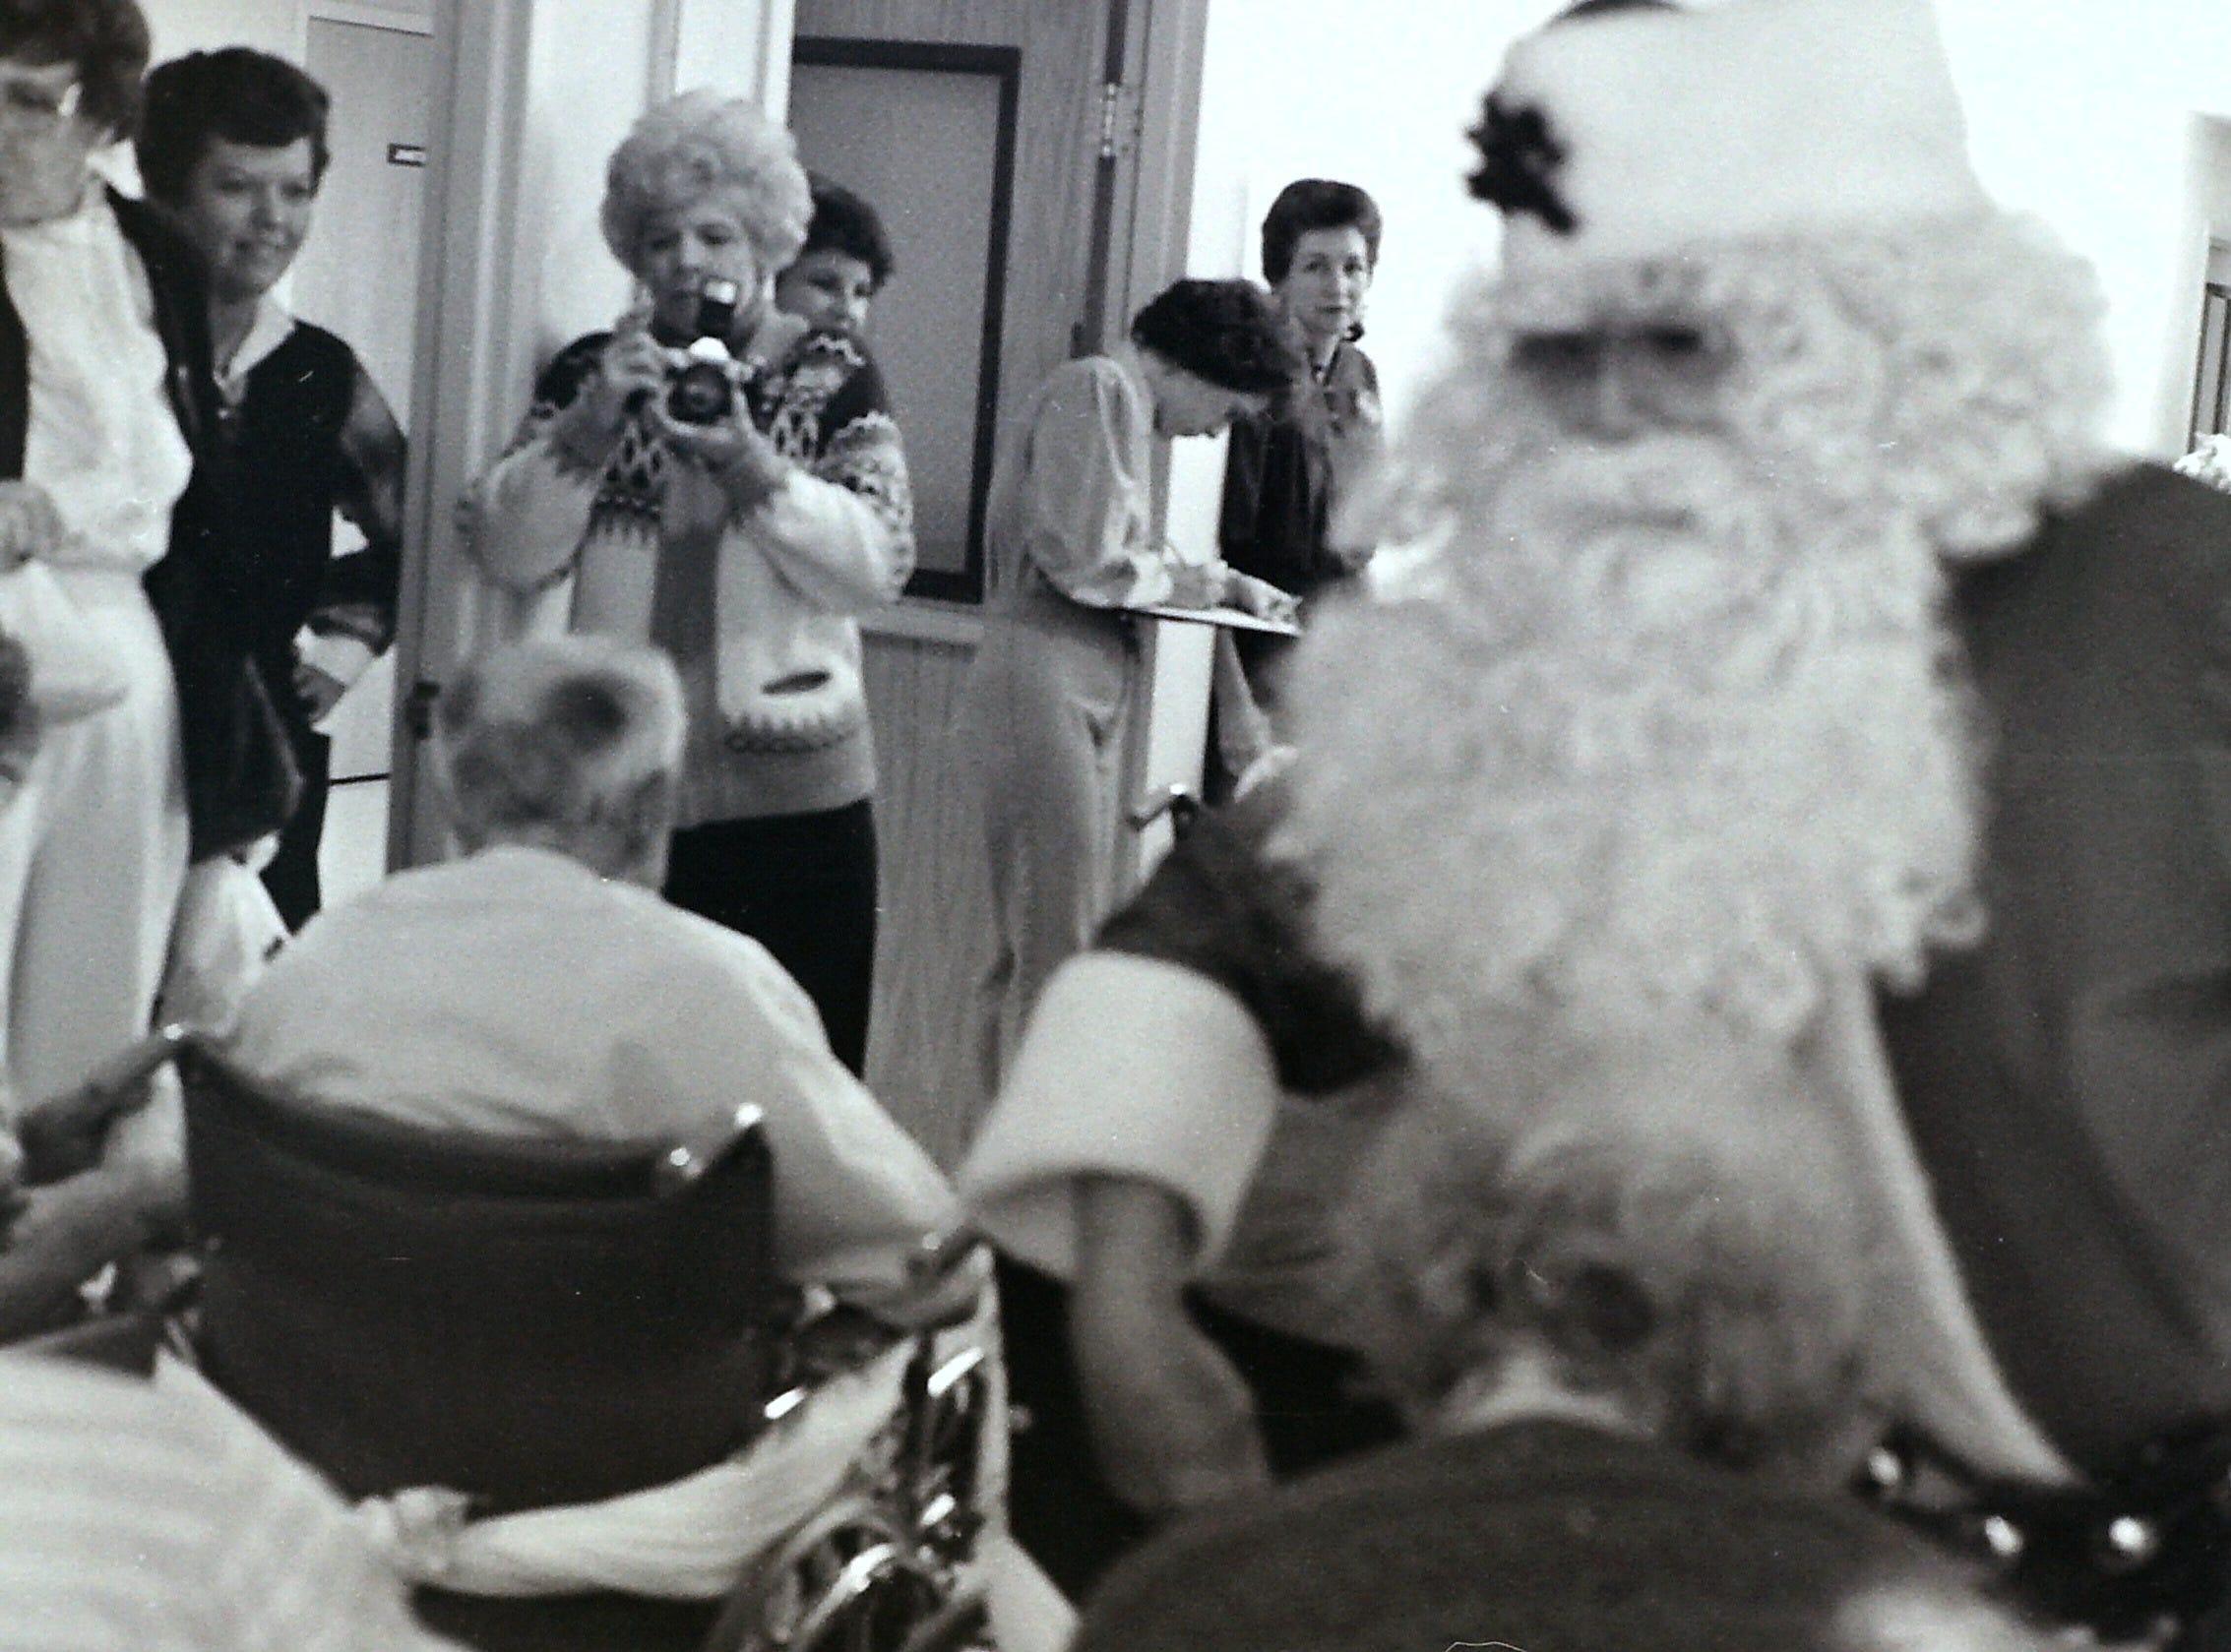 Christmas at St. George Care Center circa 1985.